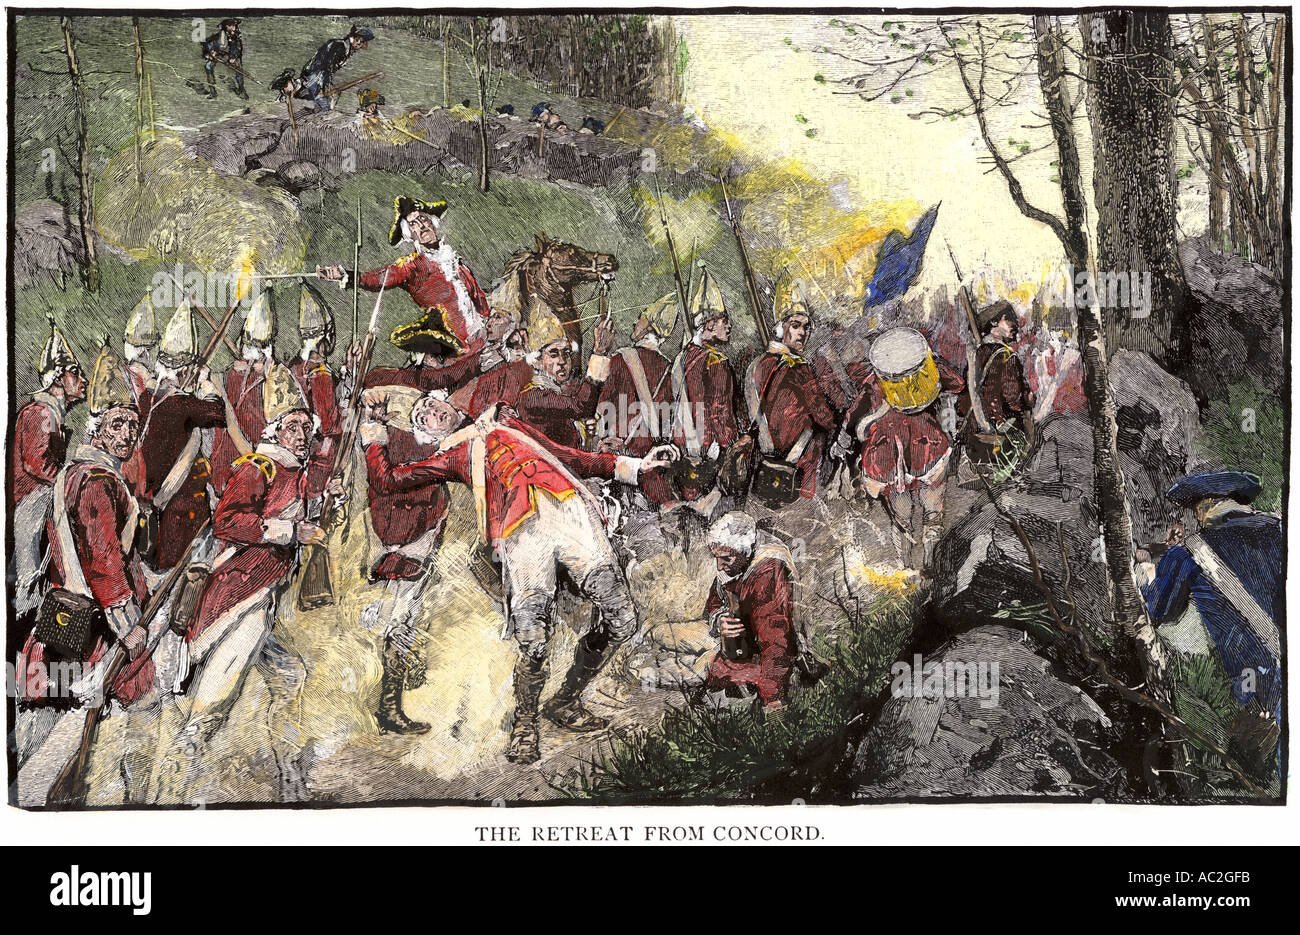 British army retreating from Battle of Concord under fire from colonial Minutemen in ambush 1775. Hand-colored woodcut of a Howard Pyle illustration - Stock Image